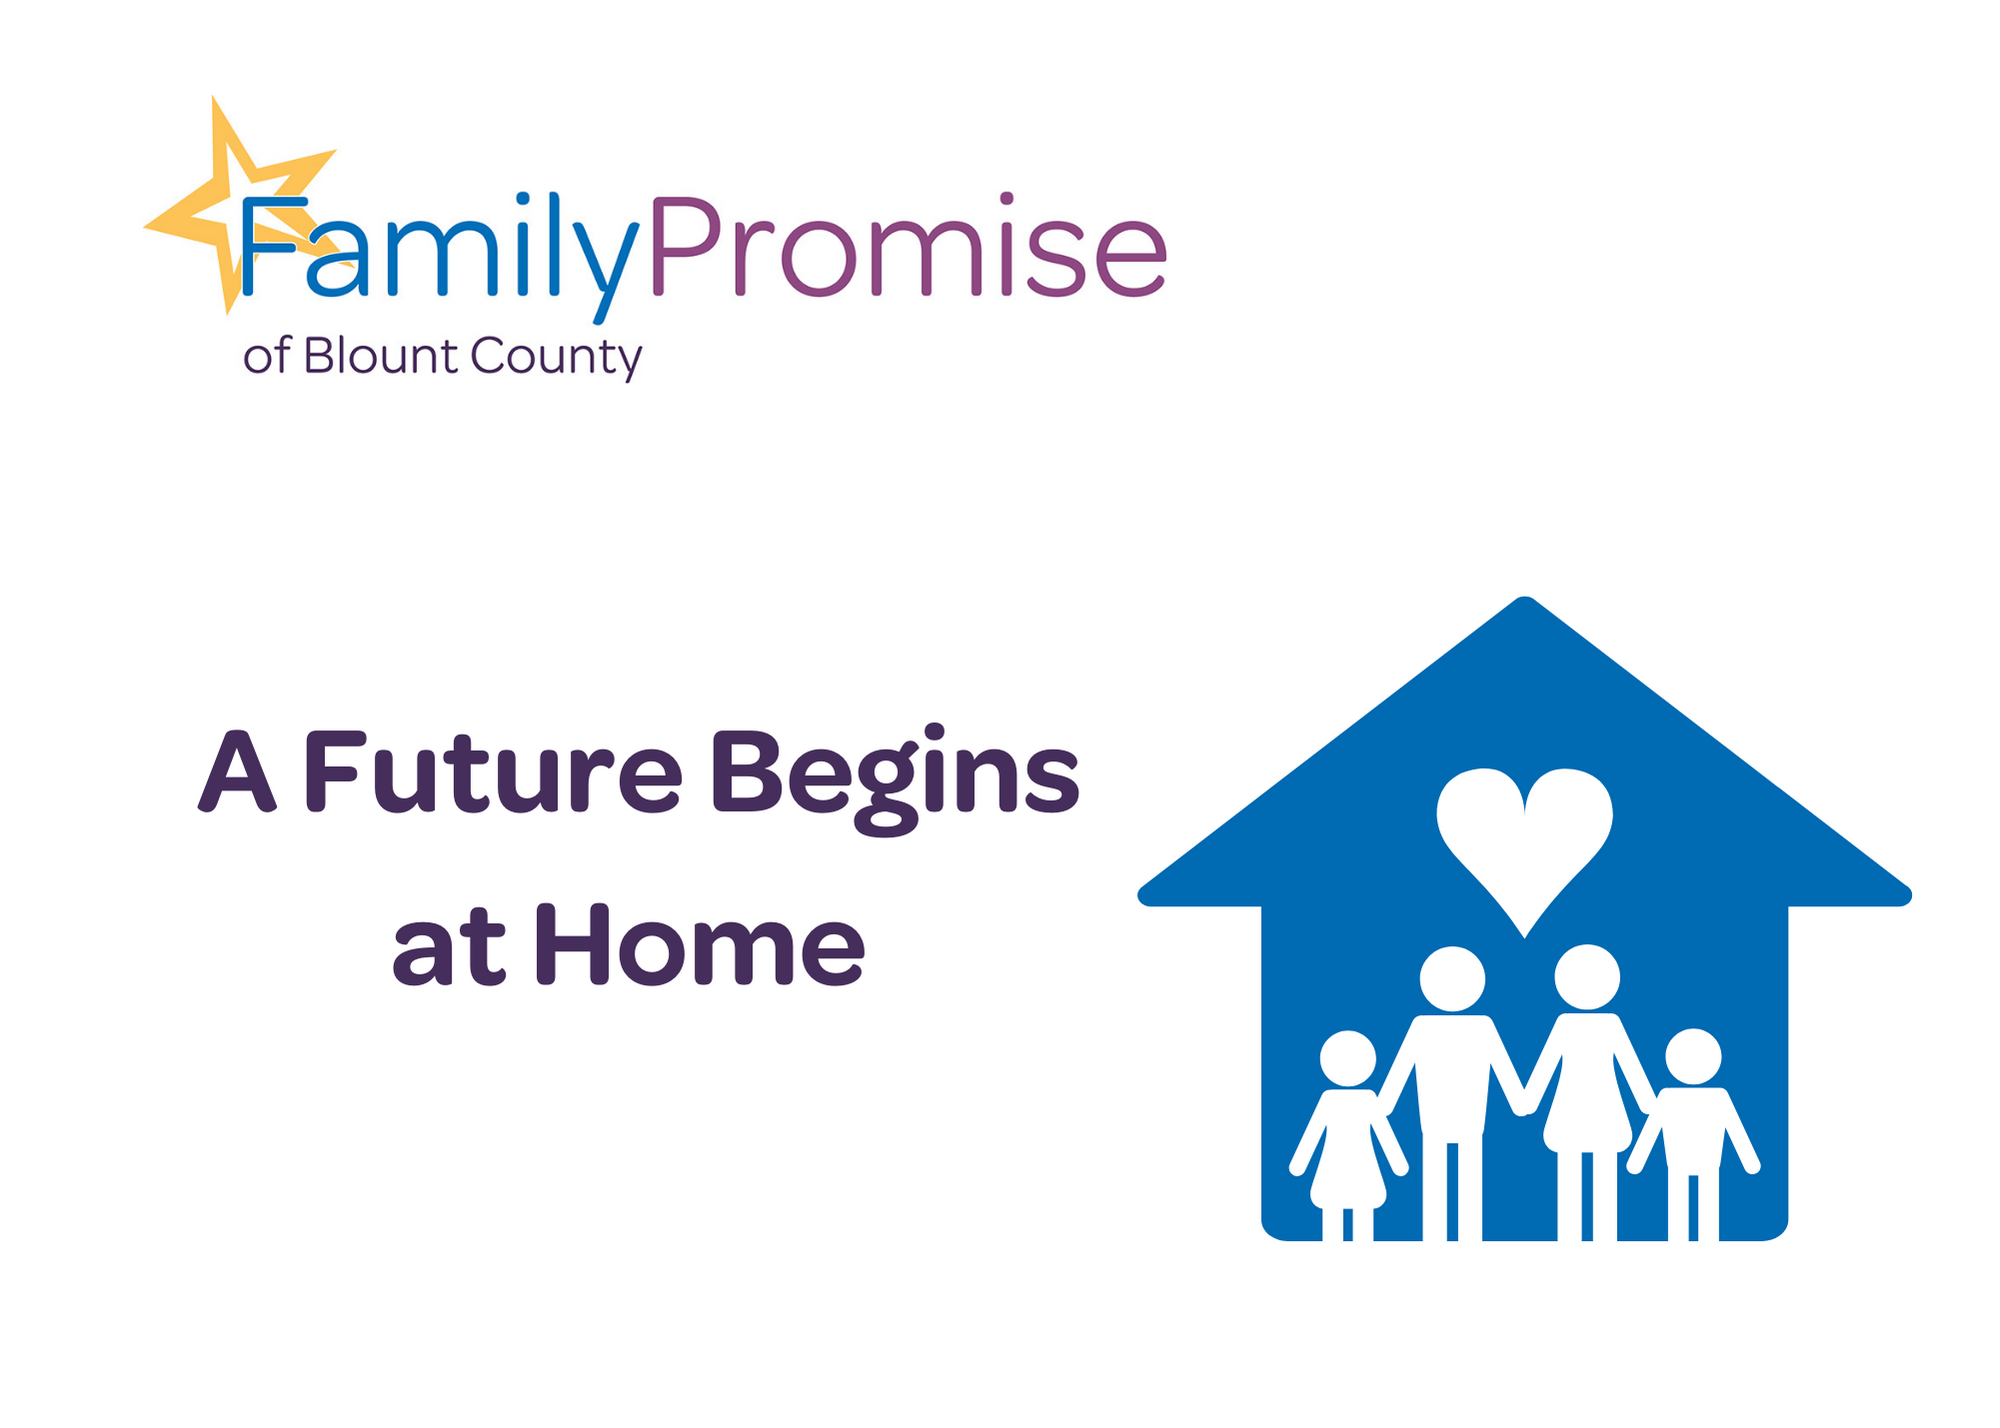 A Future Begins at Home